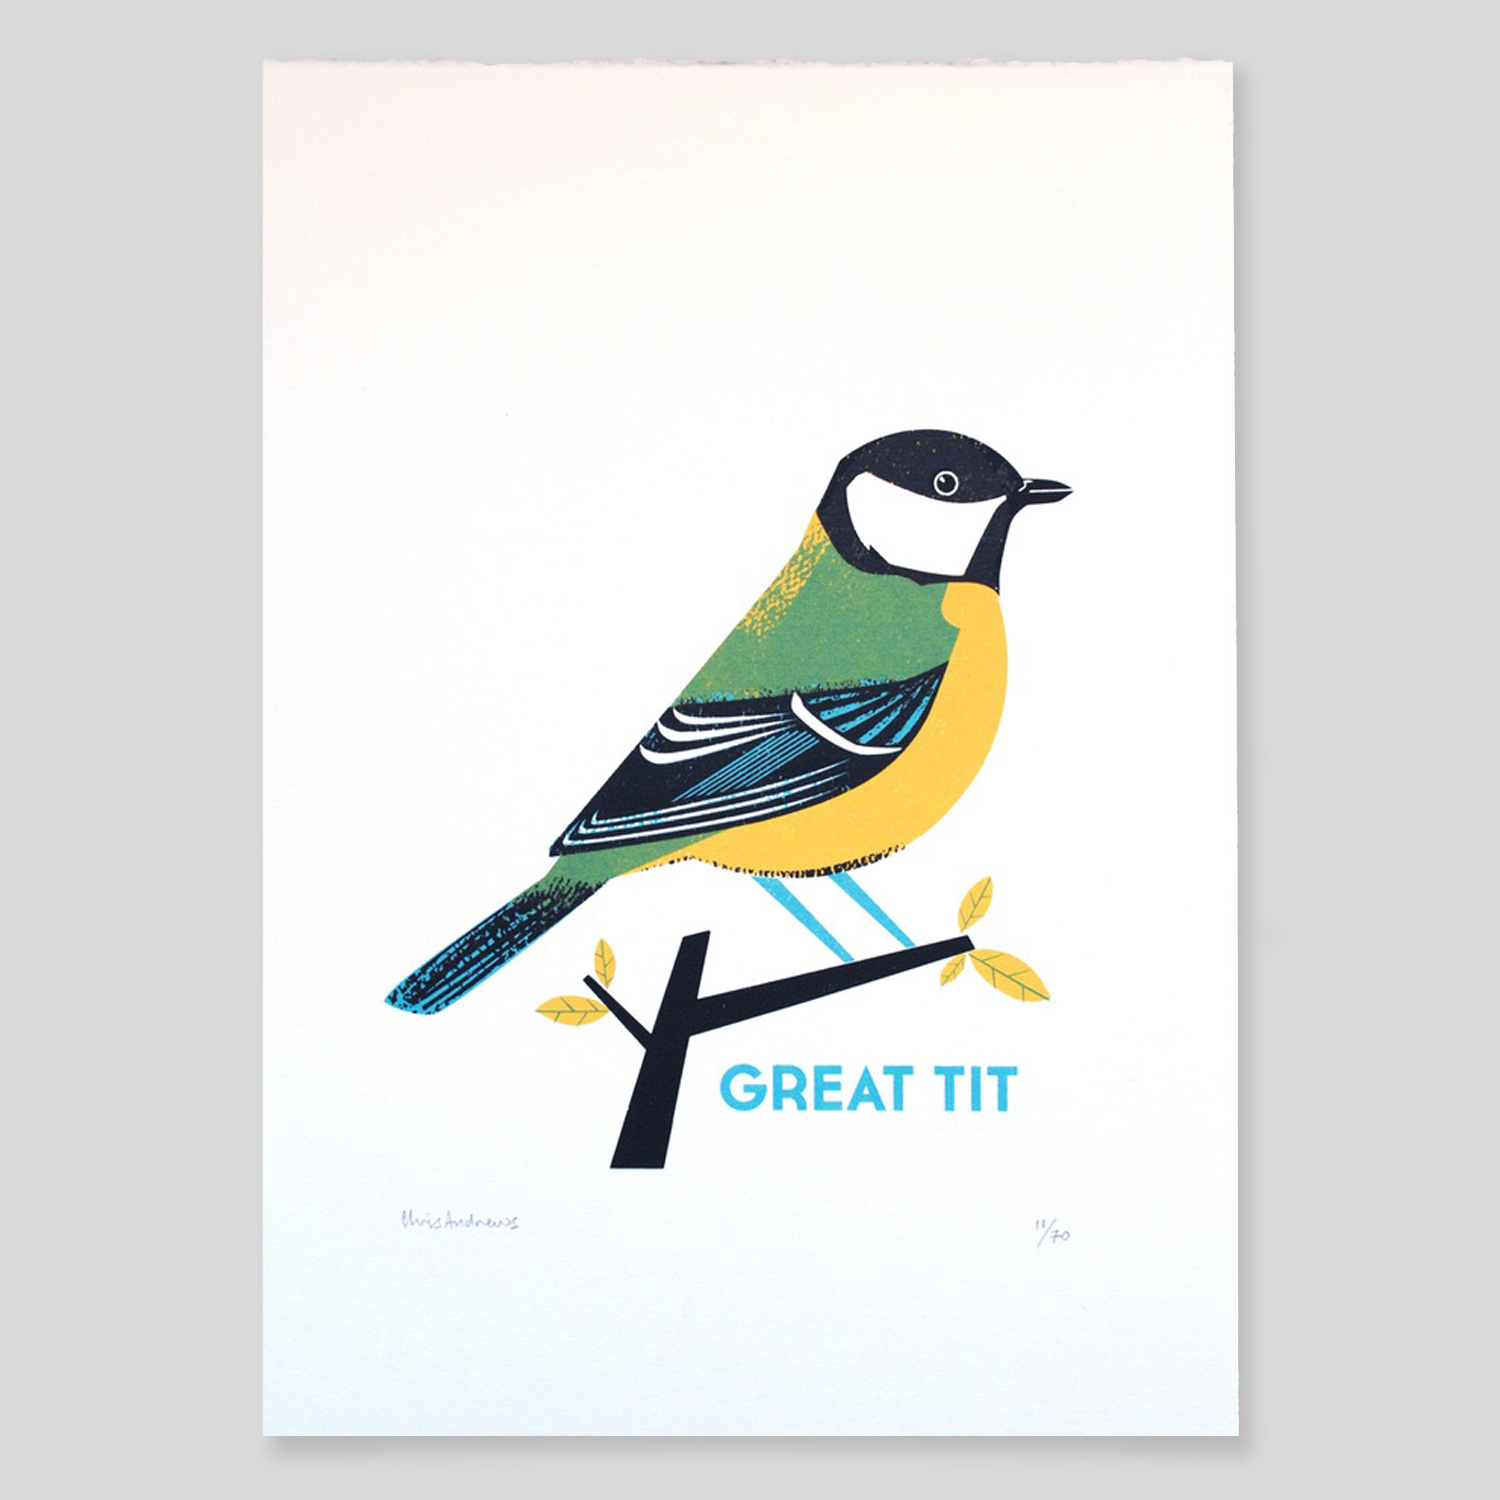 Great Tit   screenprint